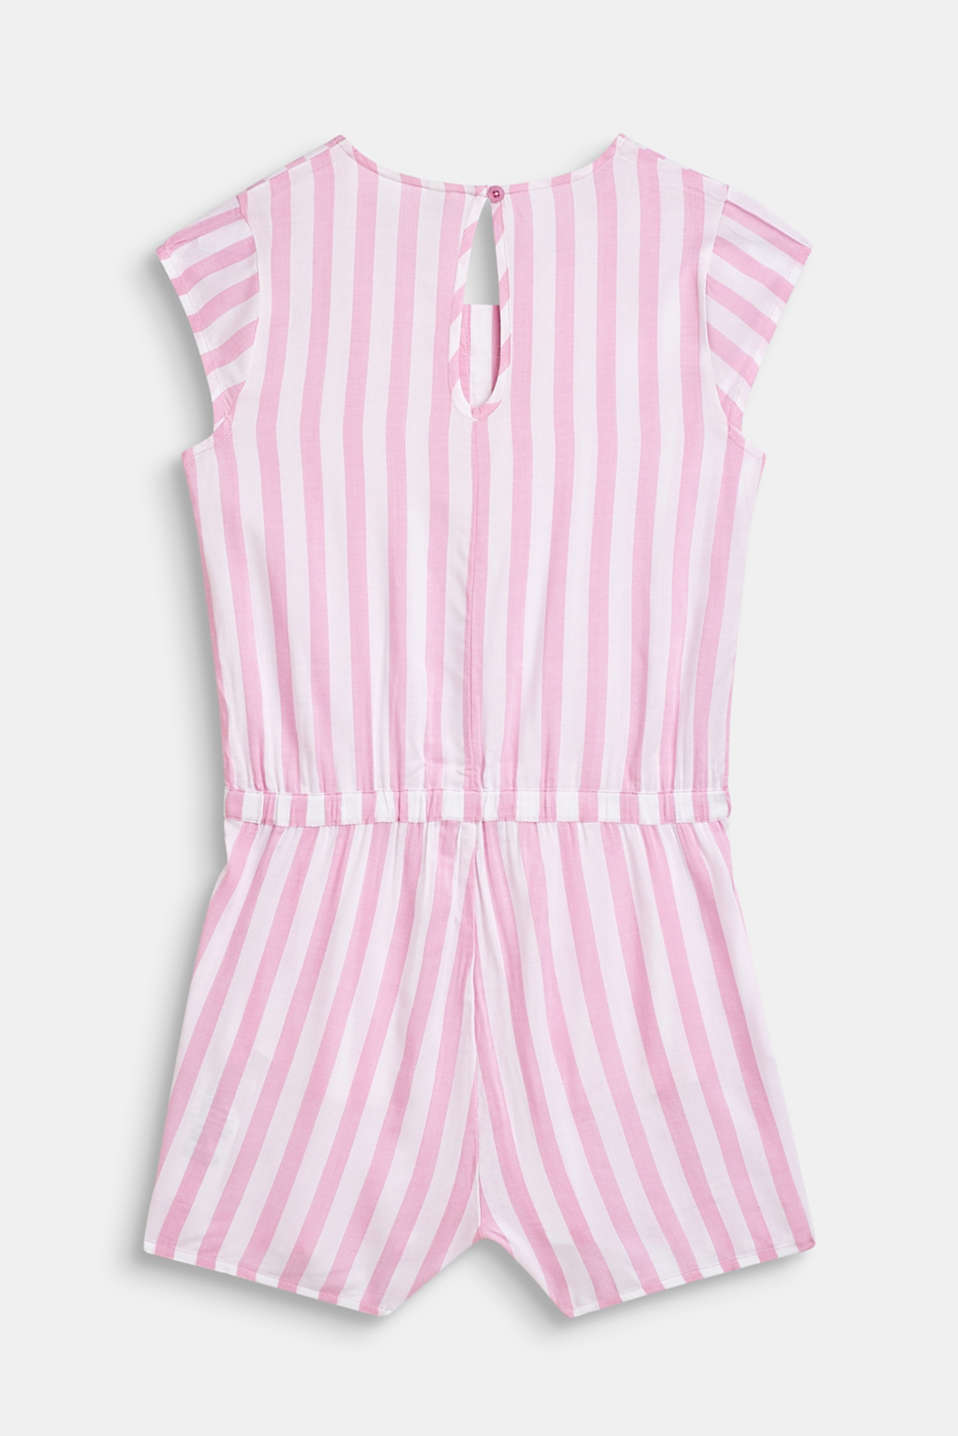 Woven playsuit with stripes, LCCANDY PINK, detail image number 1